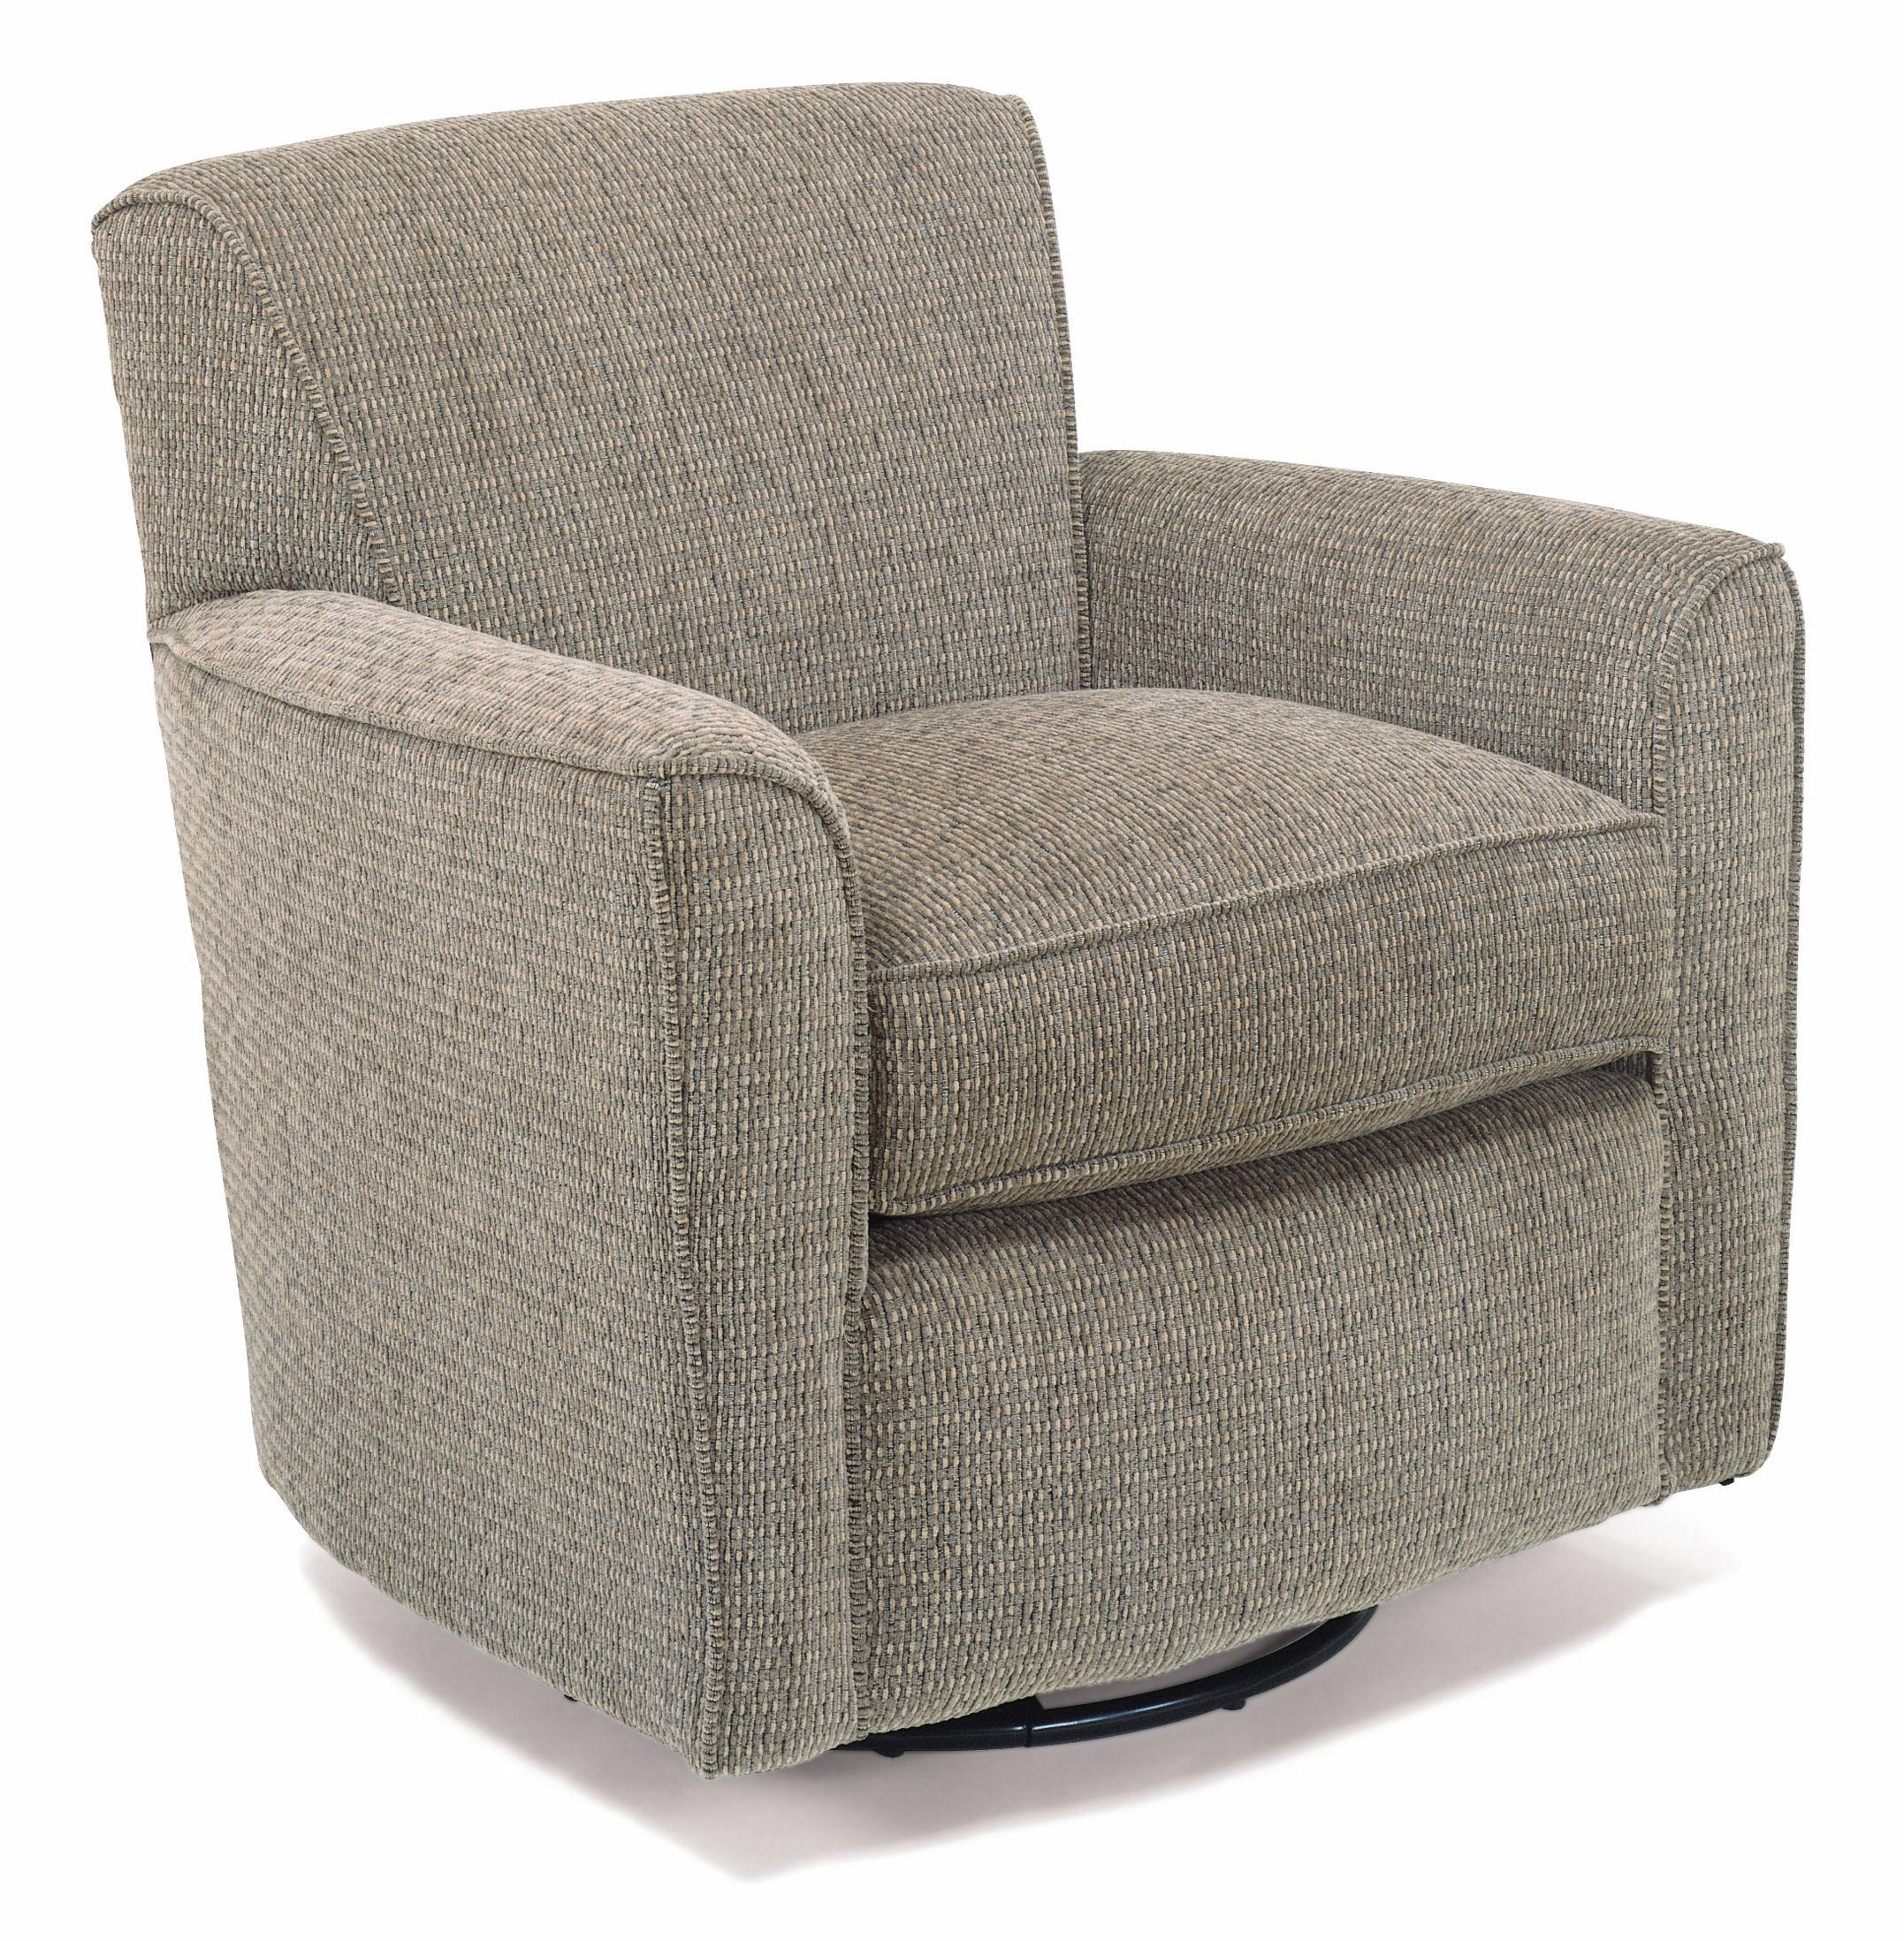 Furniture gt upholstered chair gt flexsteel lakewood rocking swivel